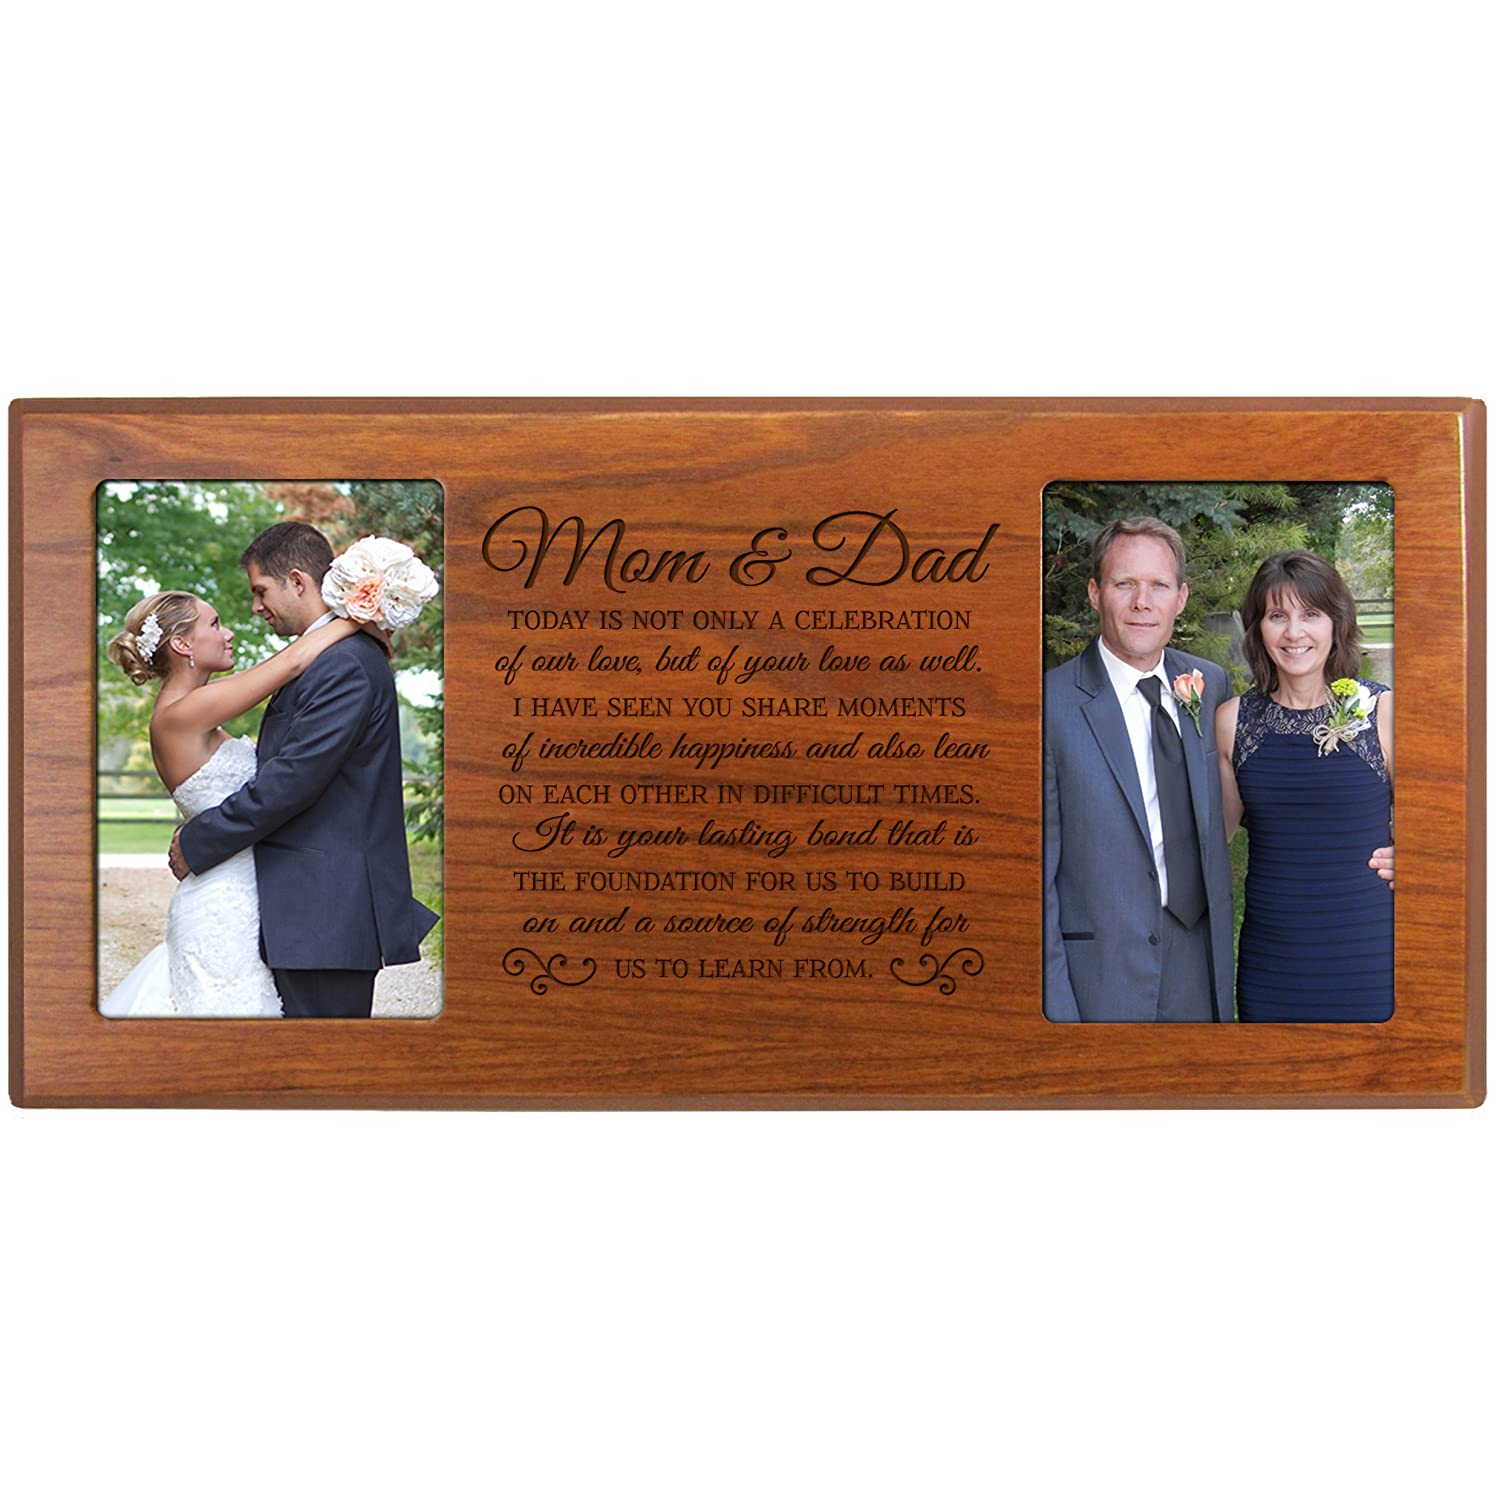 Amazon lifesong milestones parent wedding gift wedding photo amazon lifesong milestones parent wedding gift wedding photo frame parent thank you gift picture frame gift for bride and groom gift for parents negle Choice Image